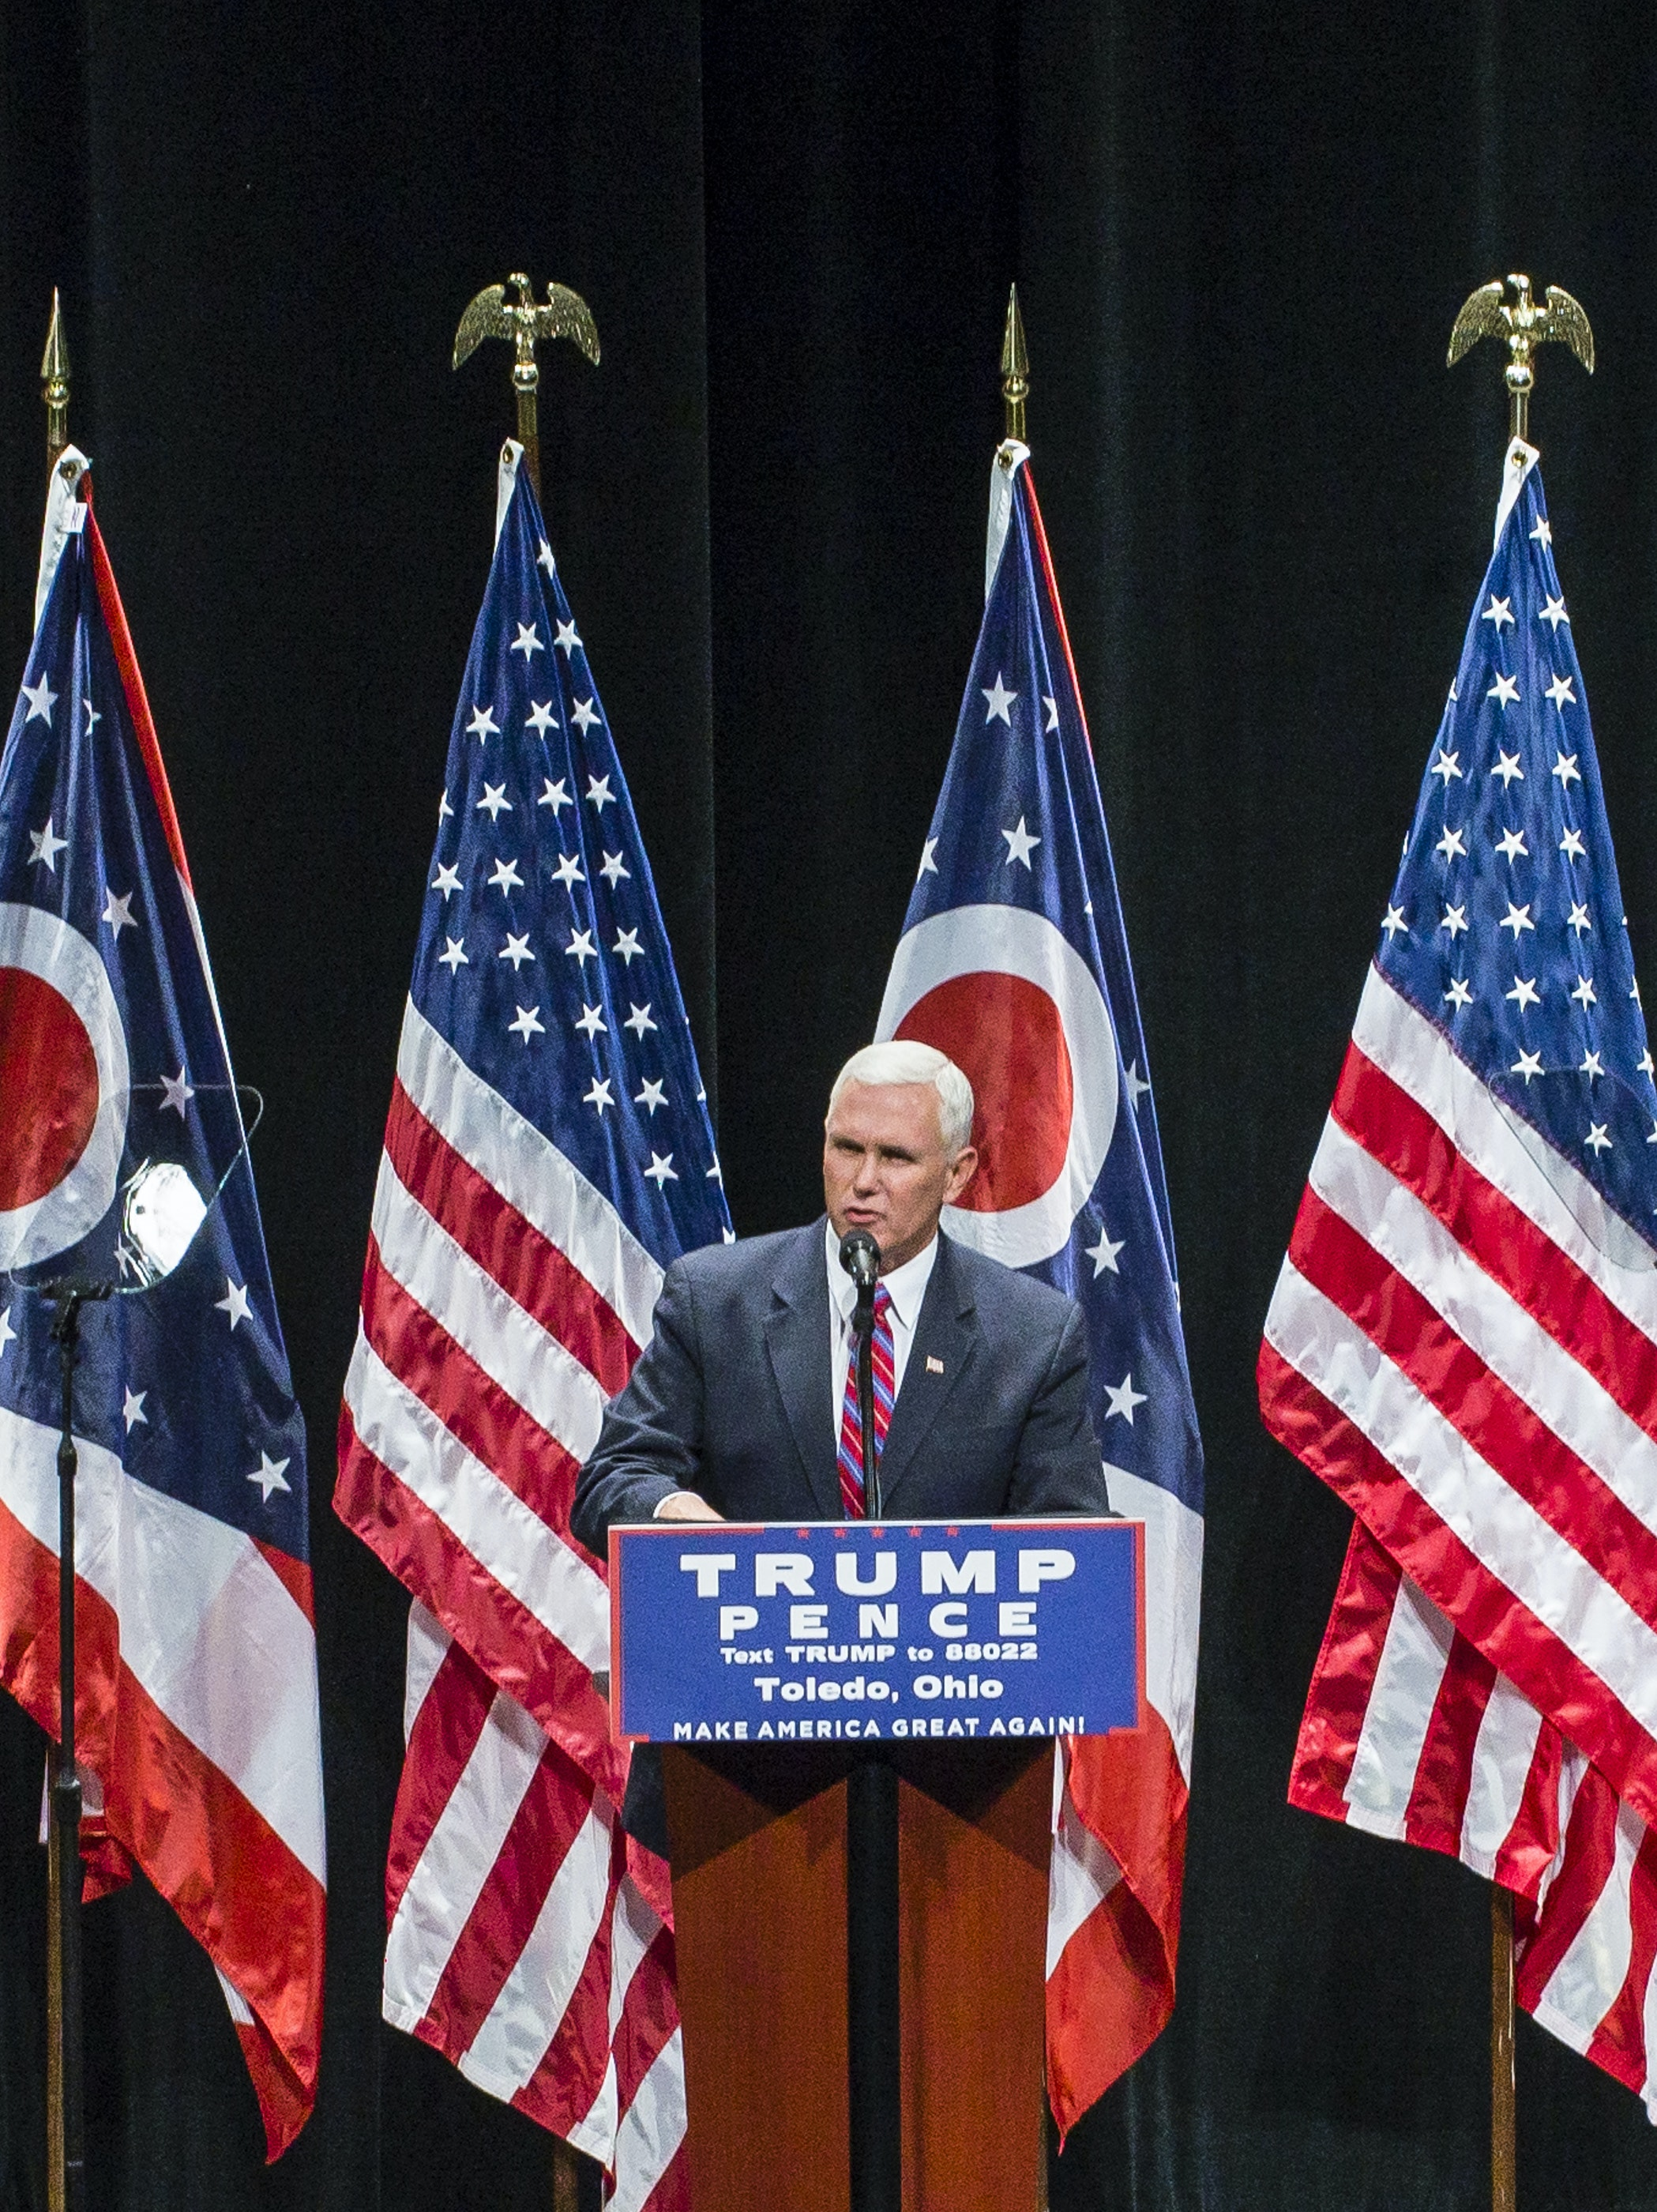 TOLEDO, OH - SEPTEMBER 21: Republican vice presidential nominee Gov. Mike Pence speaks to supporters at a rally for Republican presidential nominee Donald Trump at the Stranahan Theater on September 21, 2016 in Toledo, Ohio.  Recent Ohio polls show that Trump has a lead over Democratic presidential nominee Hillary Clinton. (Photo by Angelo Merendino/Getty Images)